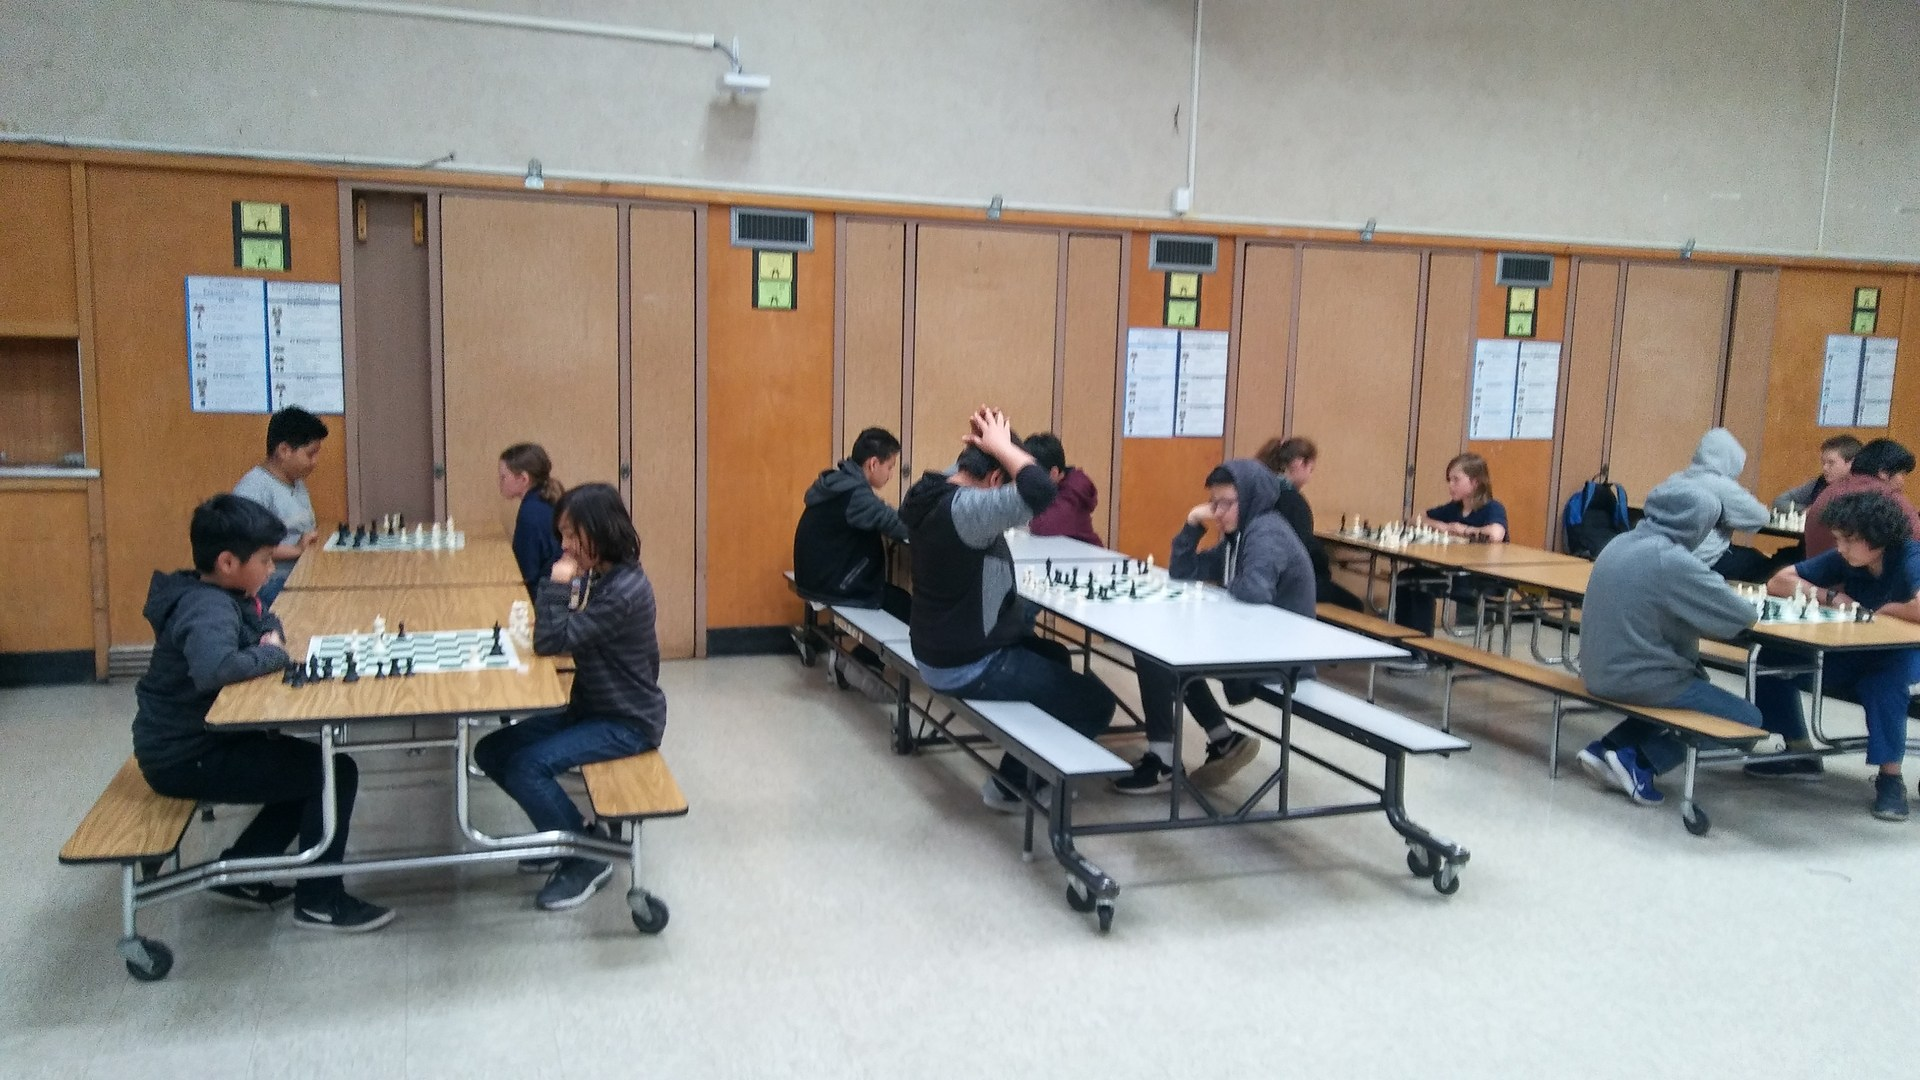 Middle School students playing chess.